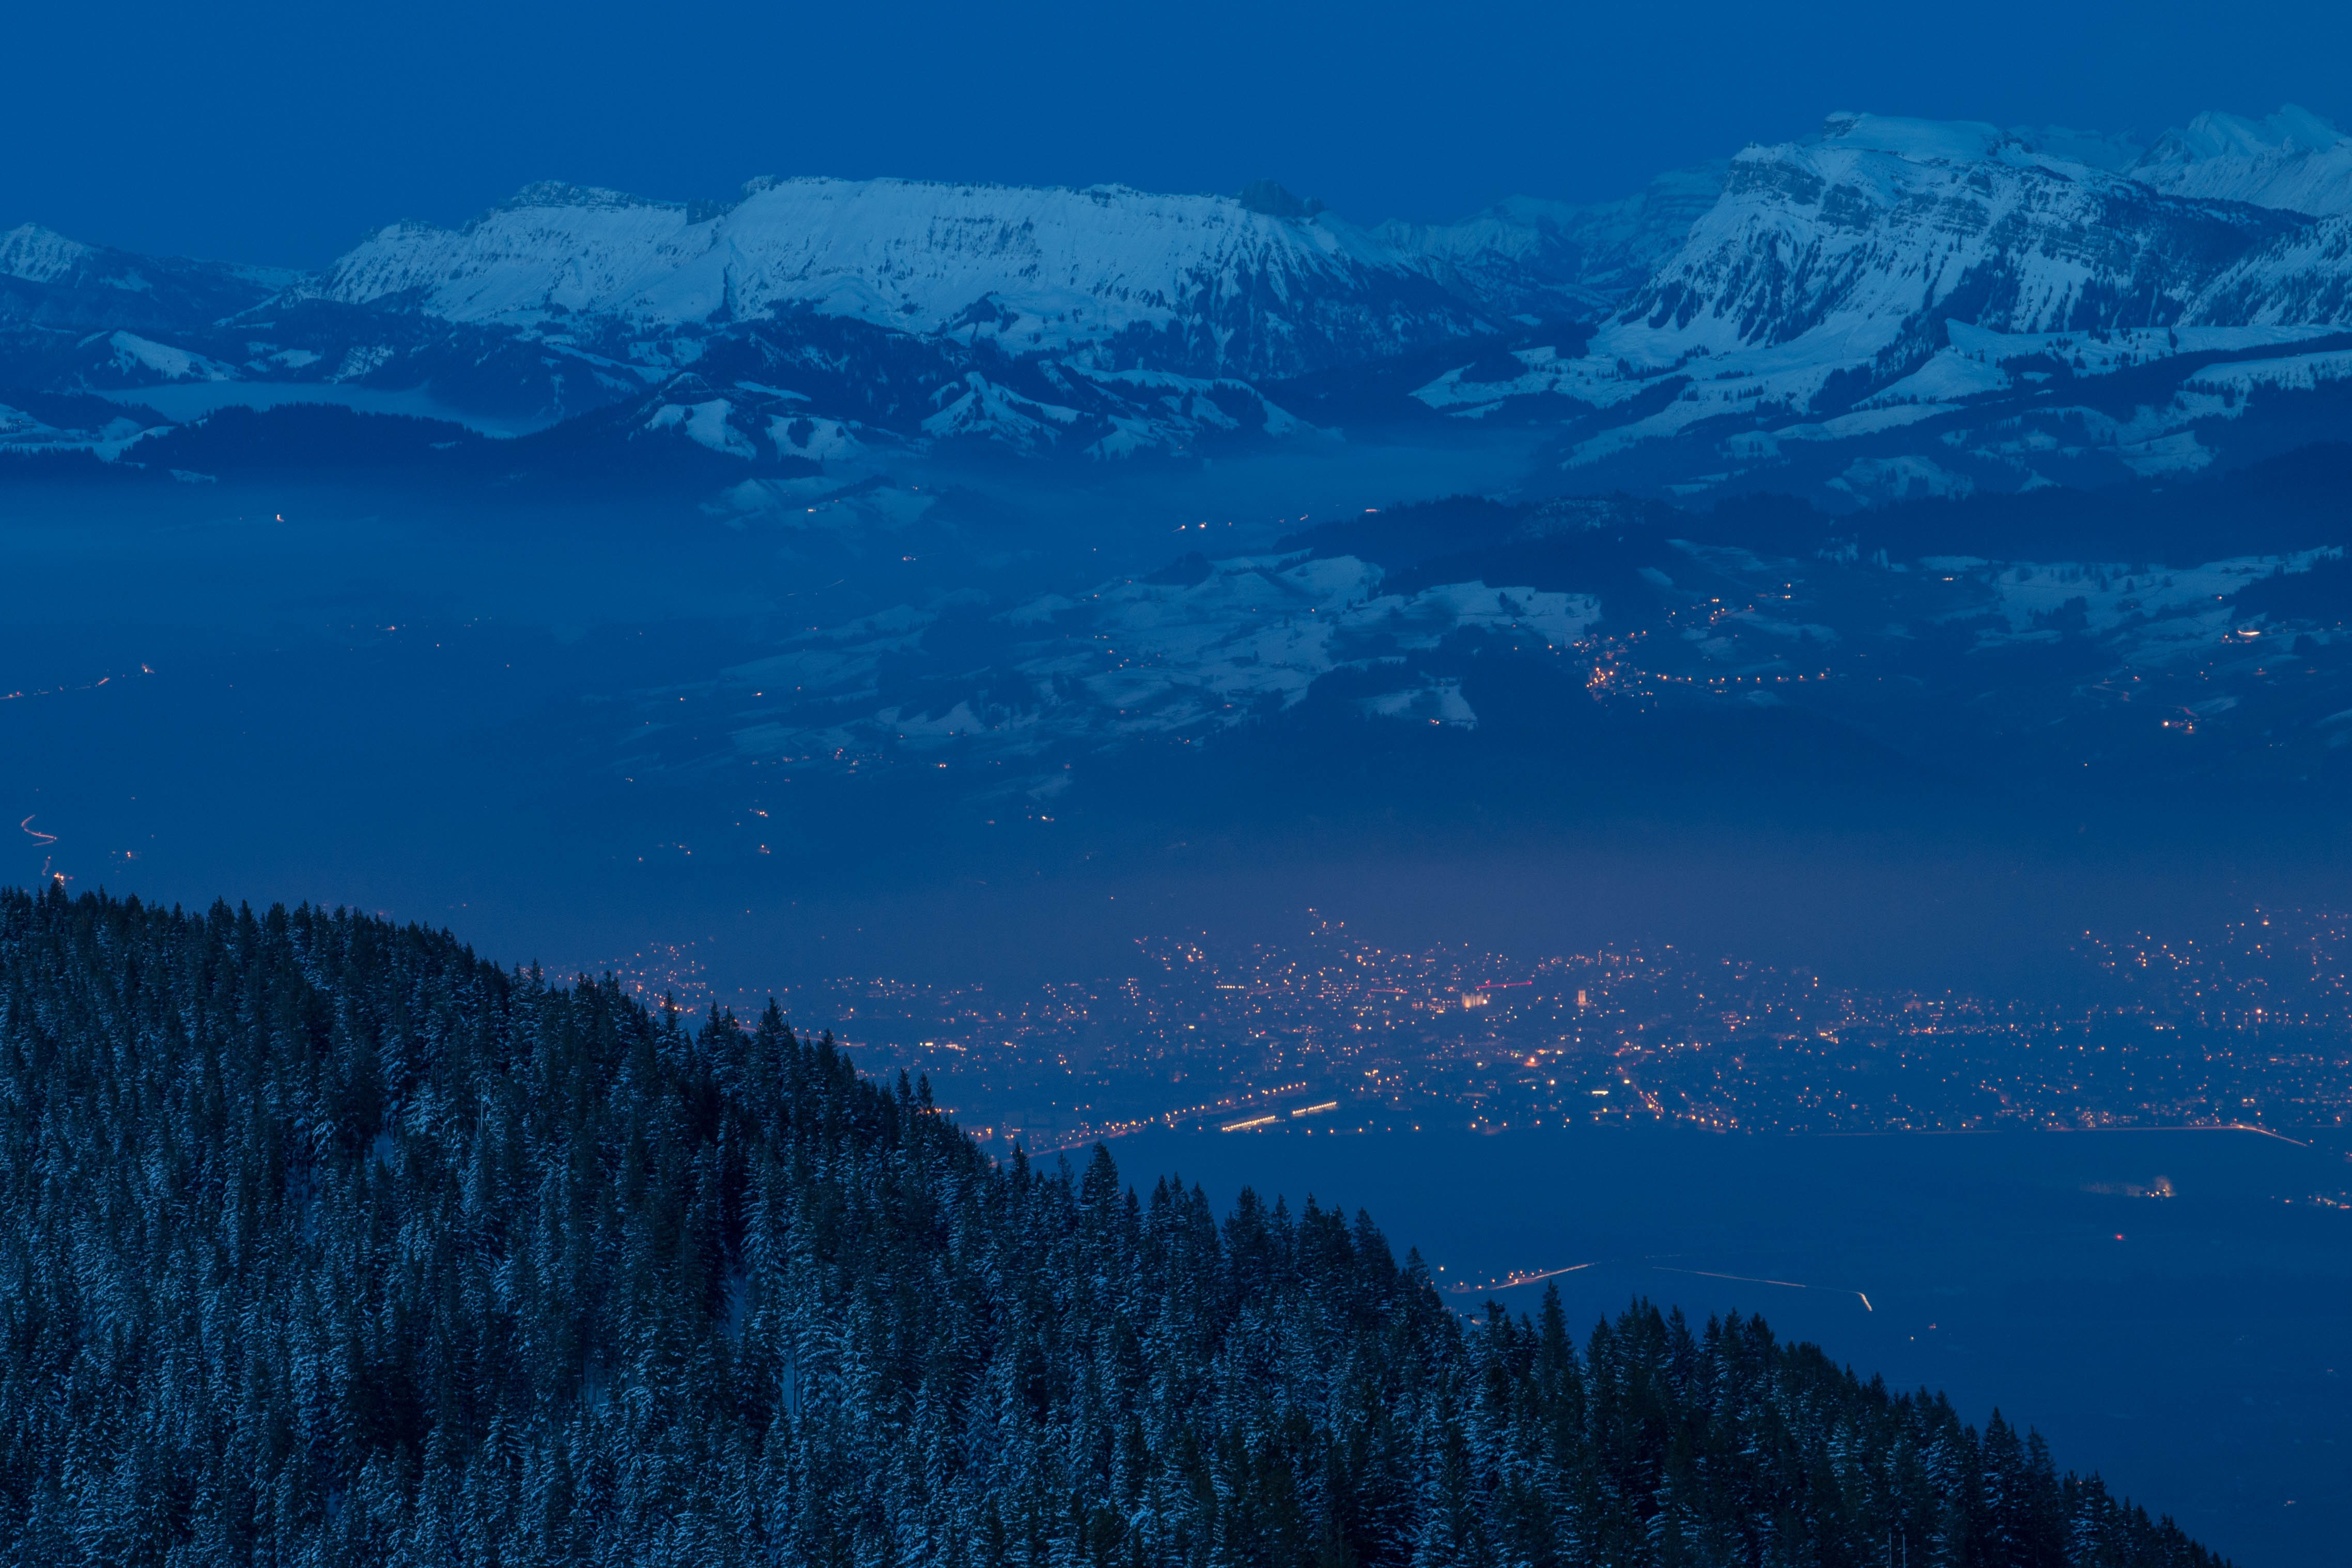 Forest slopes and snowy mountains overlooking the town of Thun on an inky blue night